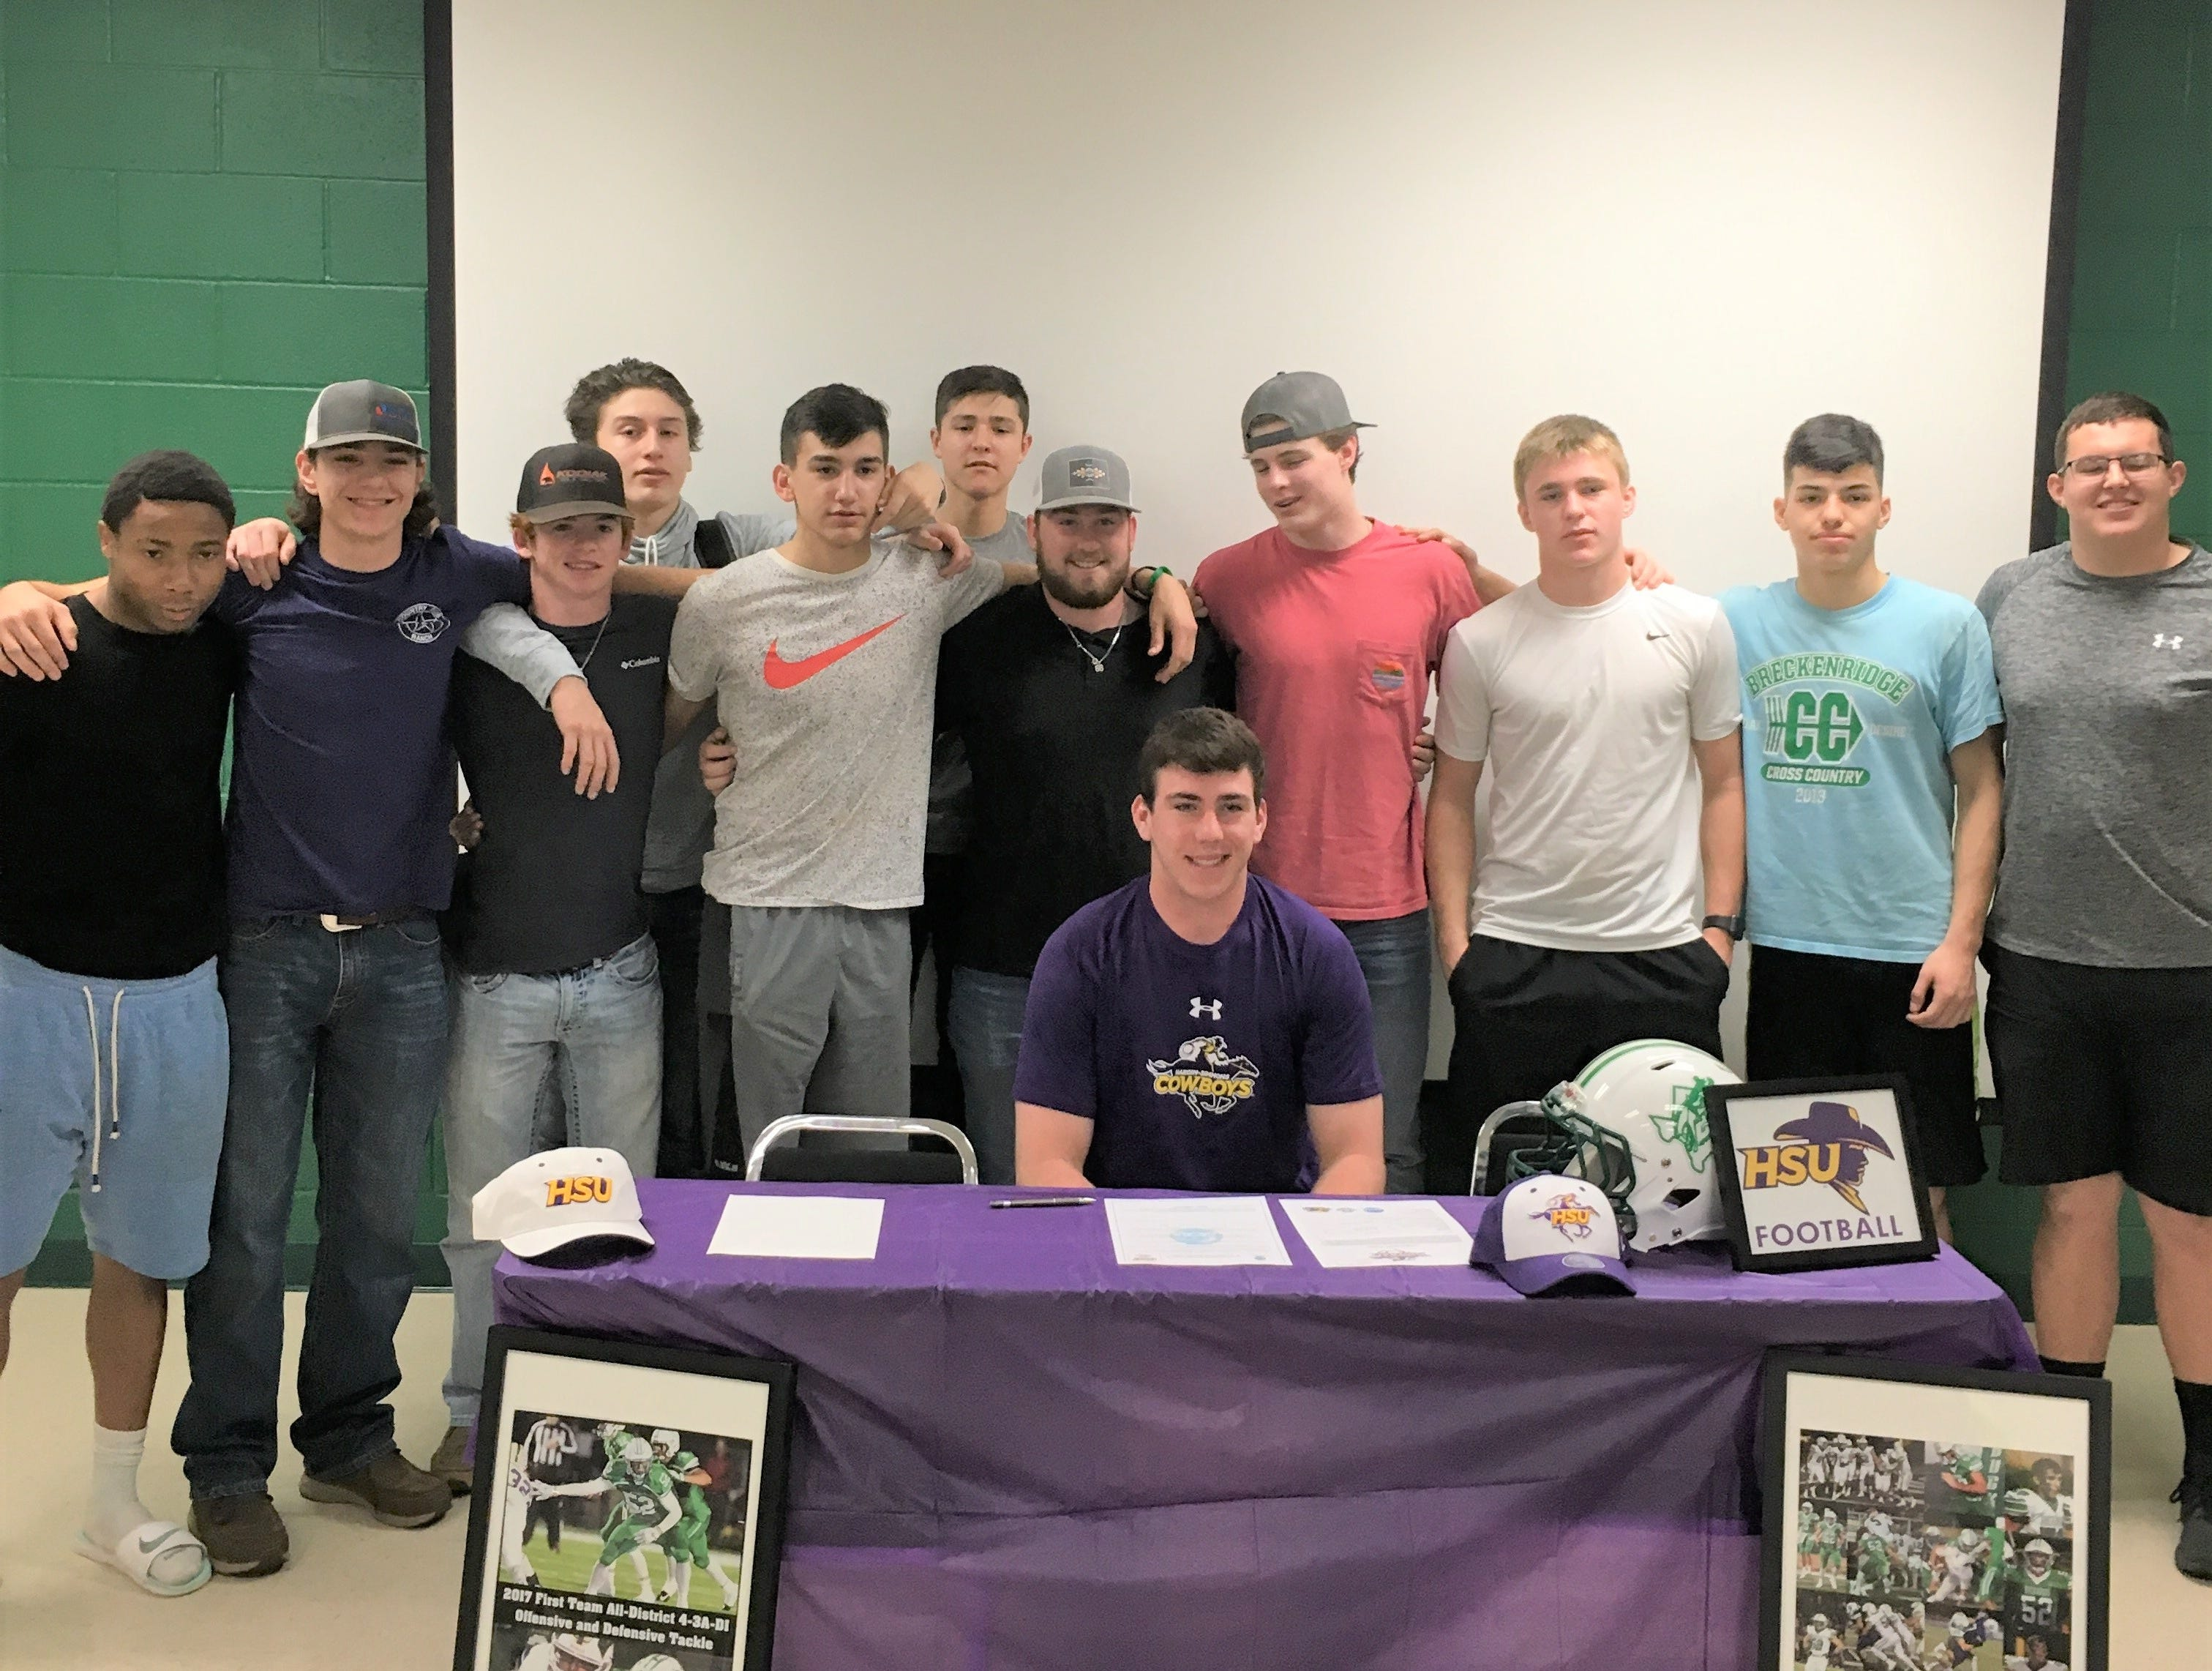 Breckenridge's Rance Russell, seated, poses with teammates after signing with Hardin-Simmons football.